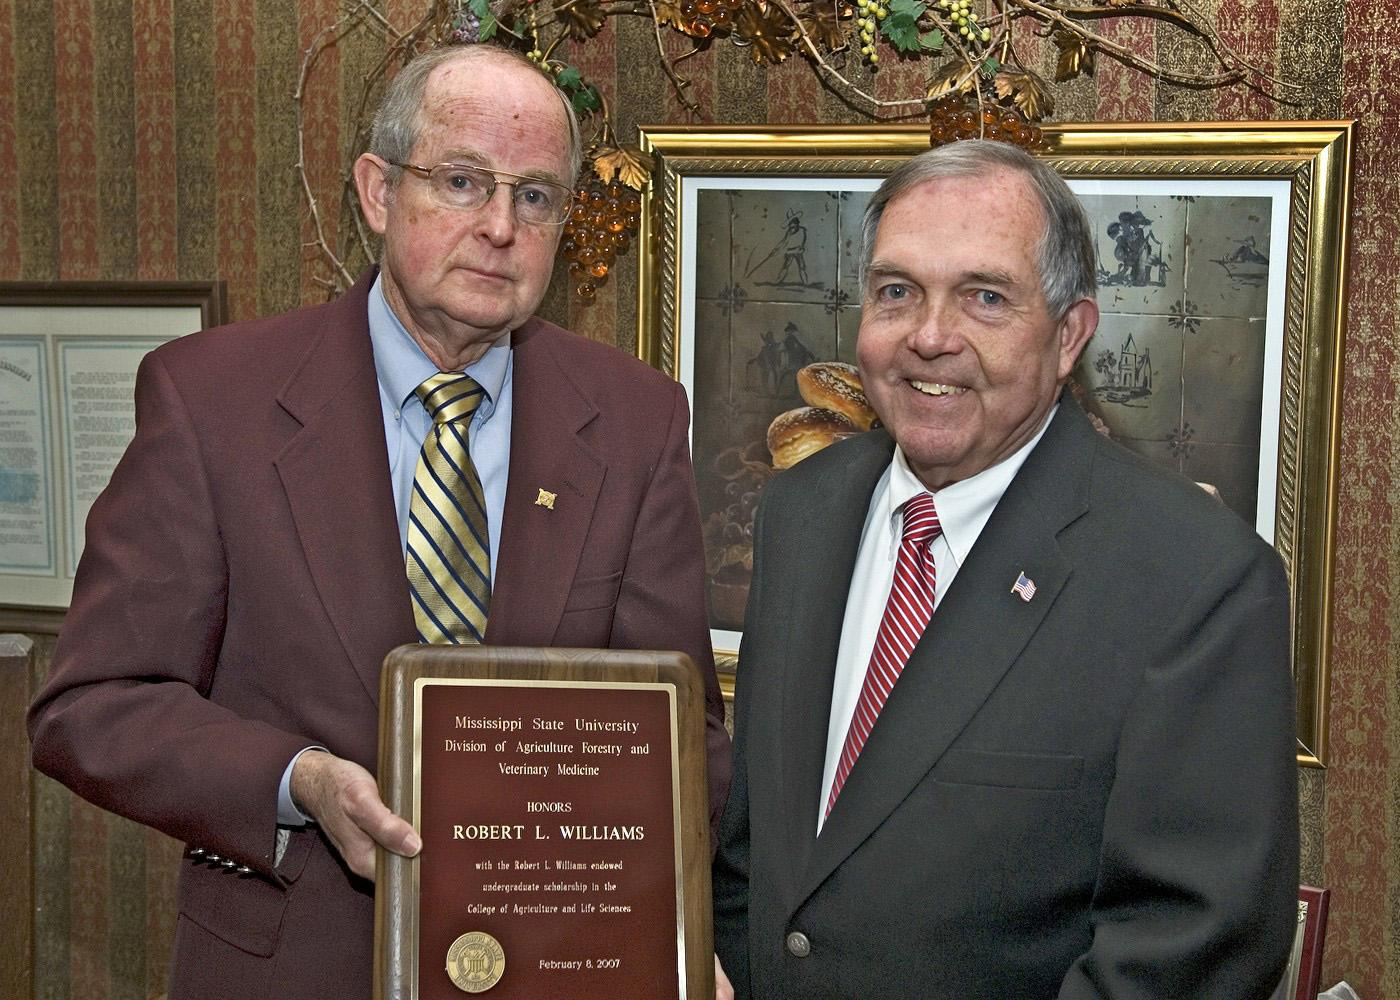 MSU Vice President for Agriculture, Forestry and Veterinary Medicine Vance Watson, right, presents a plaque to Robert L. Williams recognizing the scholarship honoring the agricultural economist. (Photo by Bob Ratliff, MSU Office of Ag Communications)